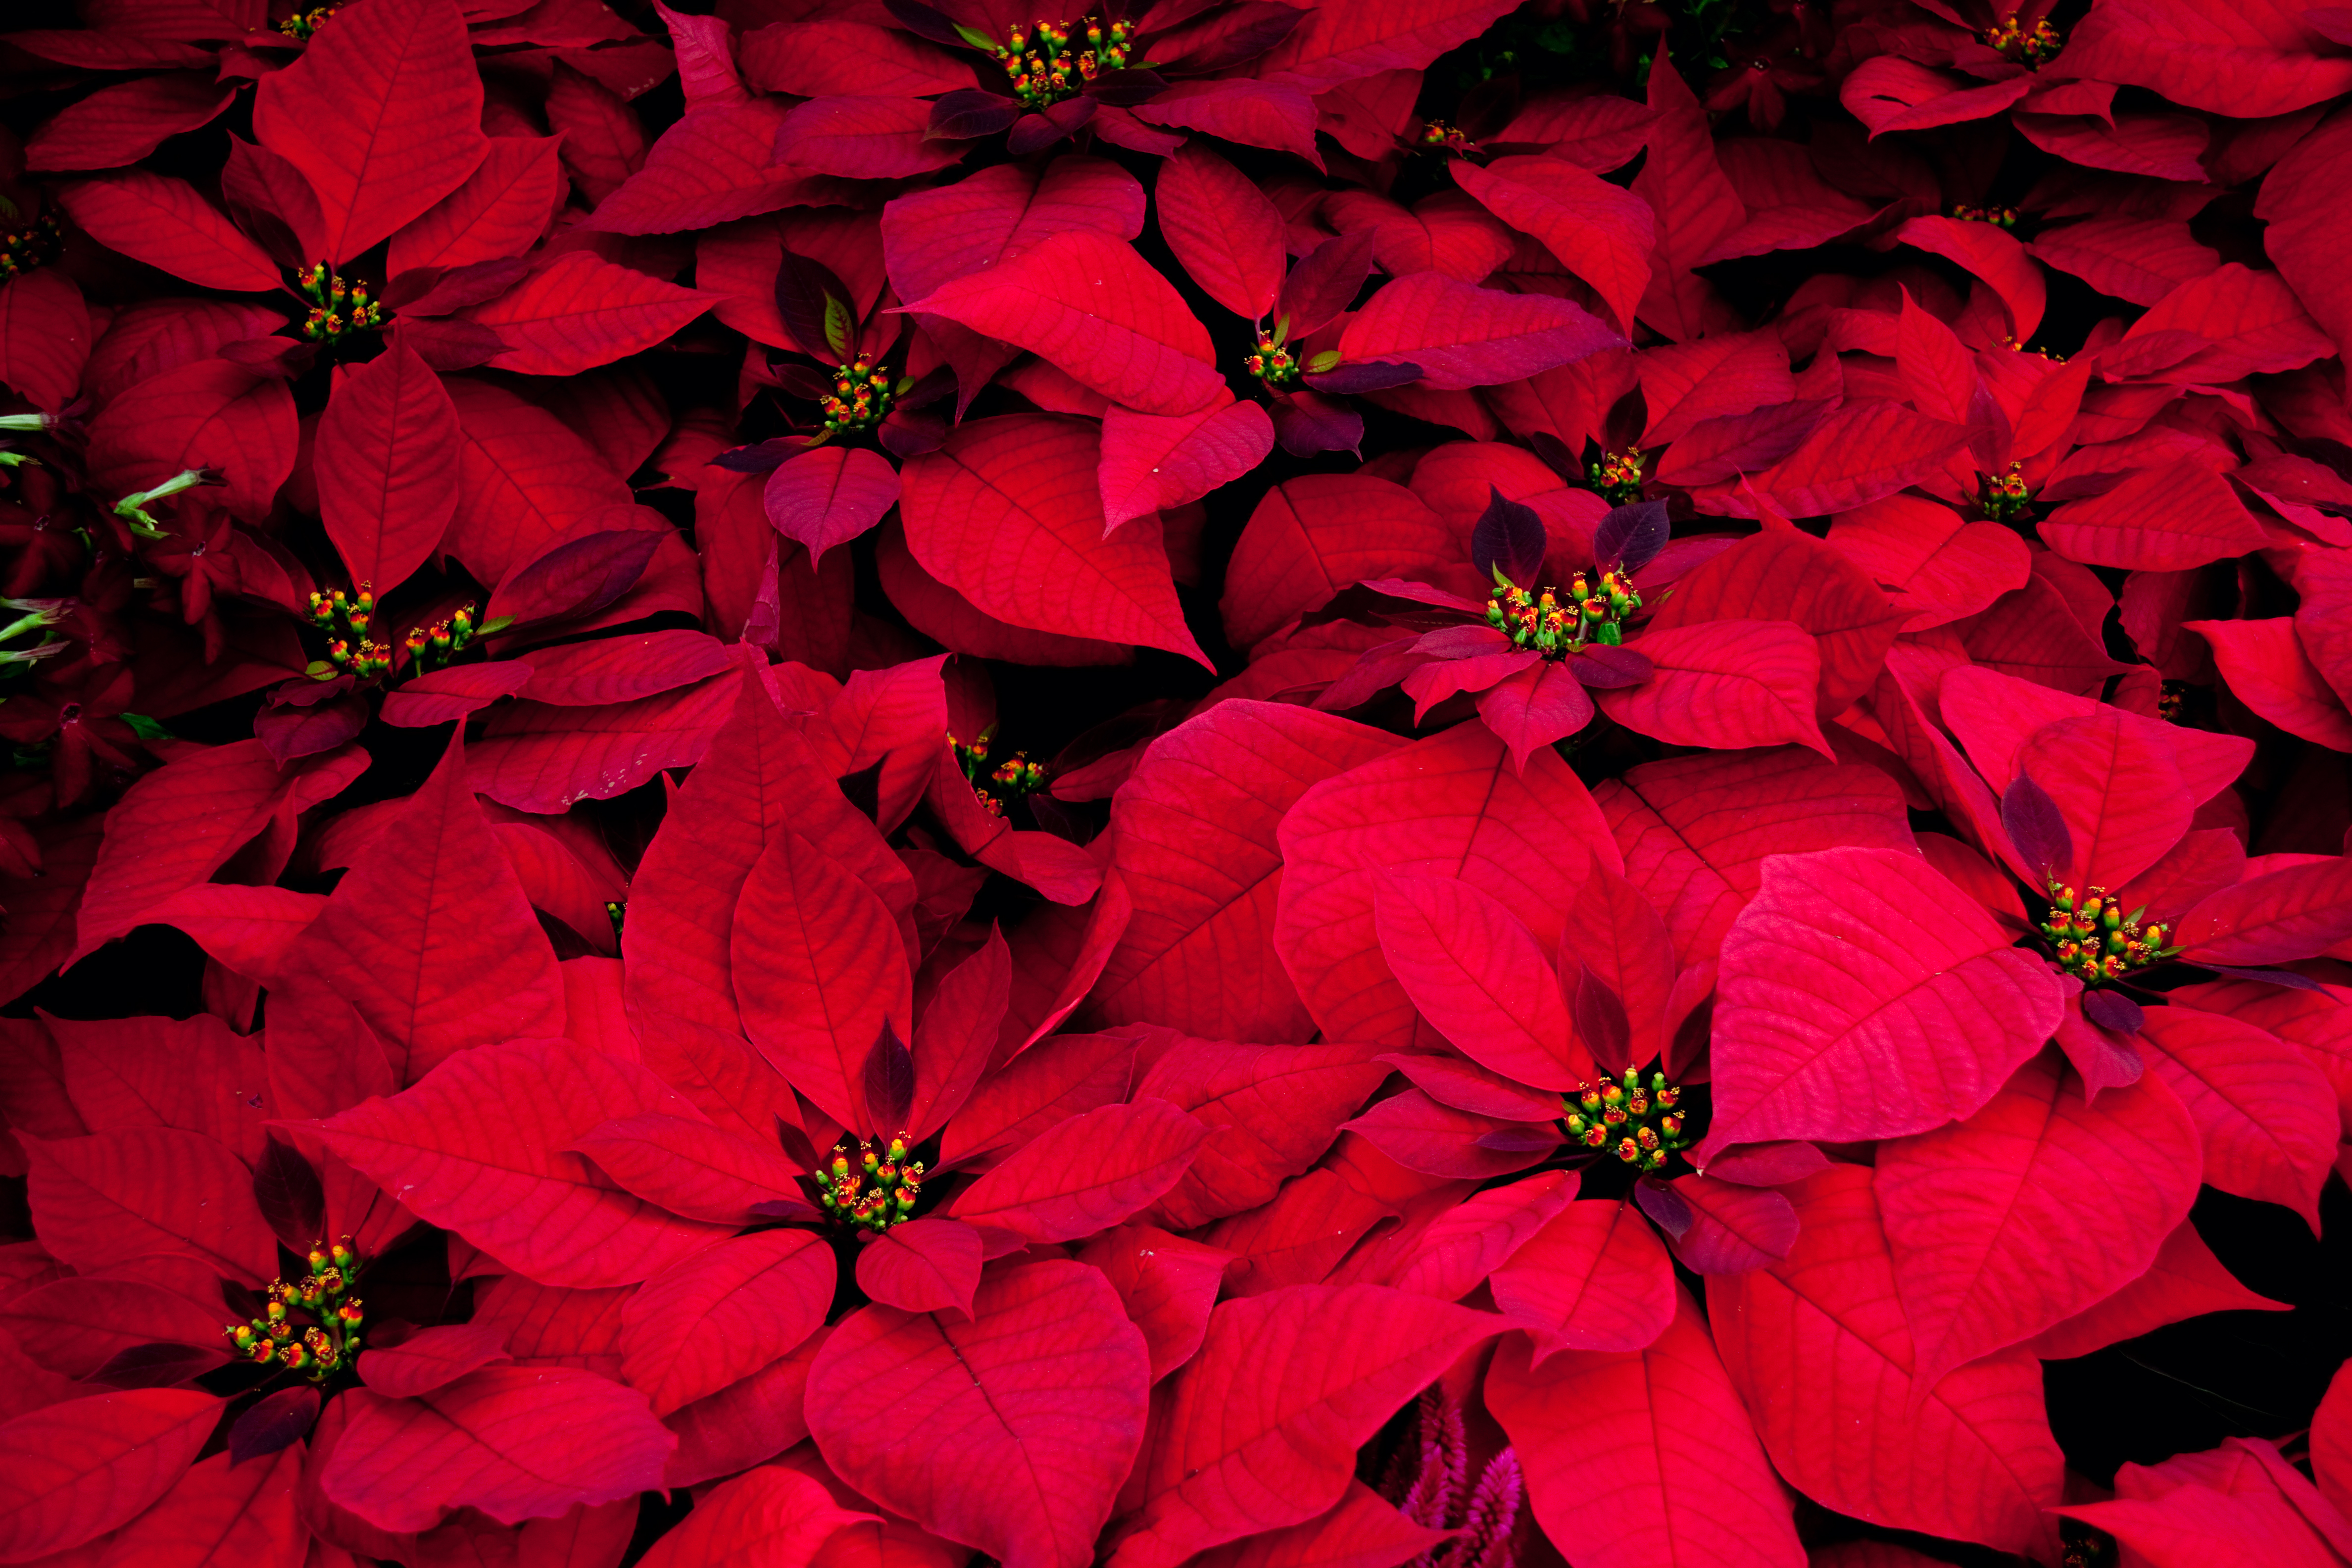 The noche buena (poinsettia) is native to Mexico and is widely used as a decoration during Christmas time.